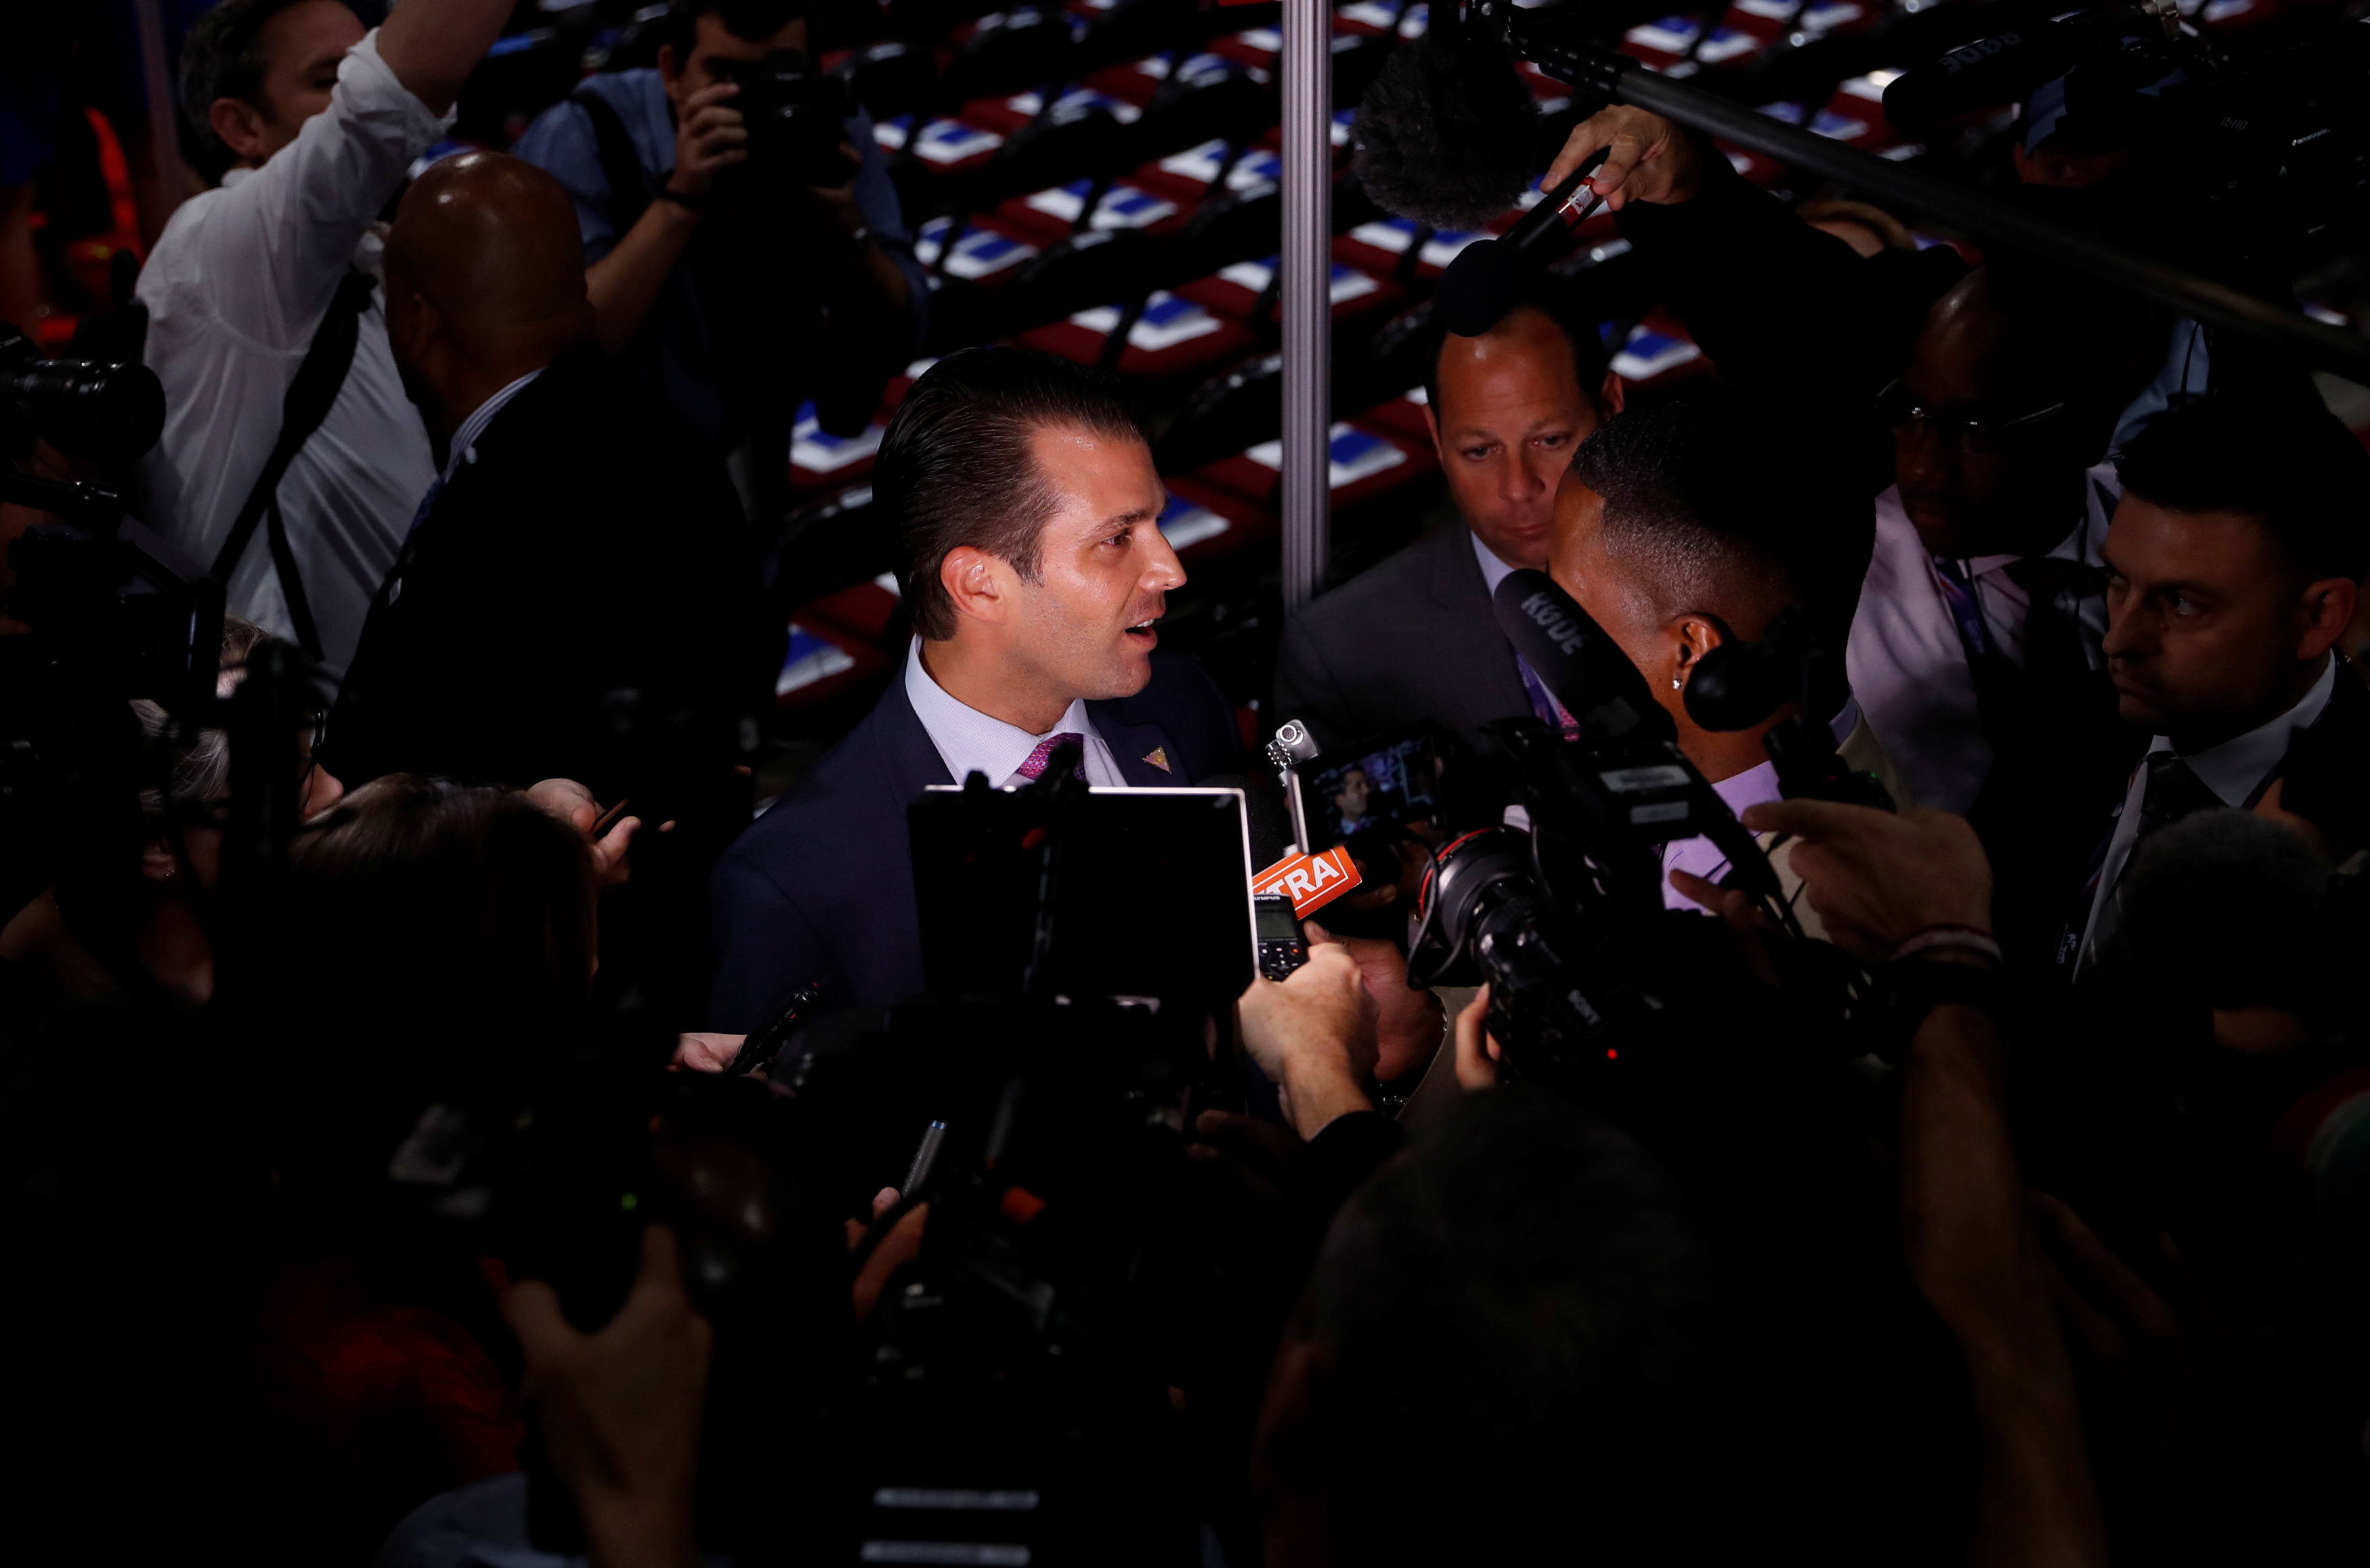 Donald Trump Jr. gives a television interview at the 2016 Republican National Convention in Cleveland